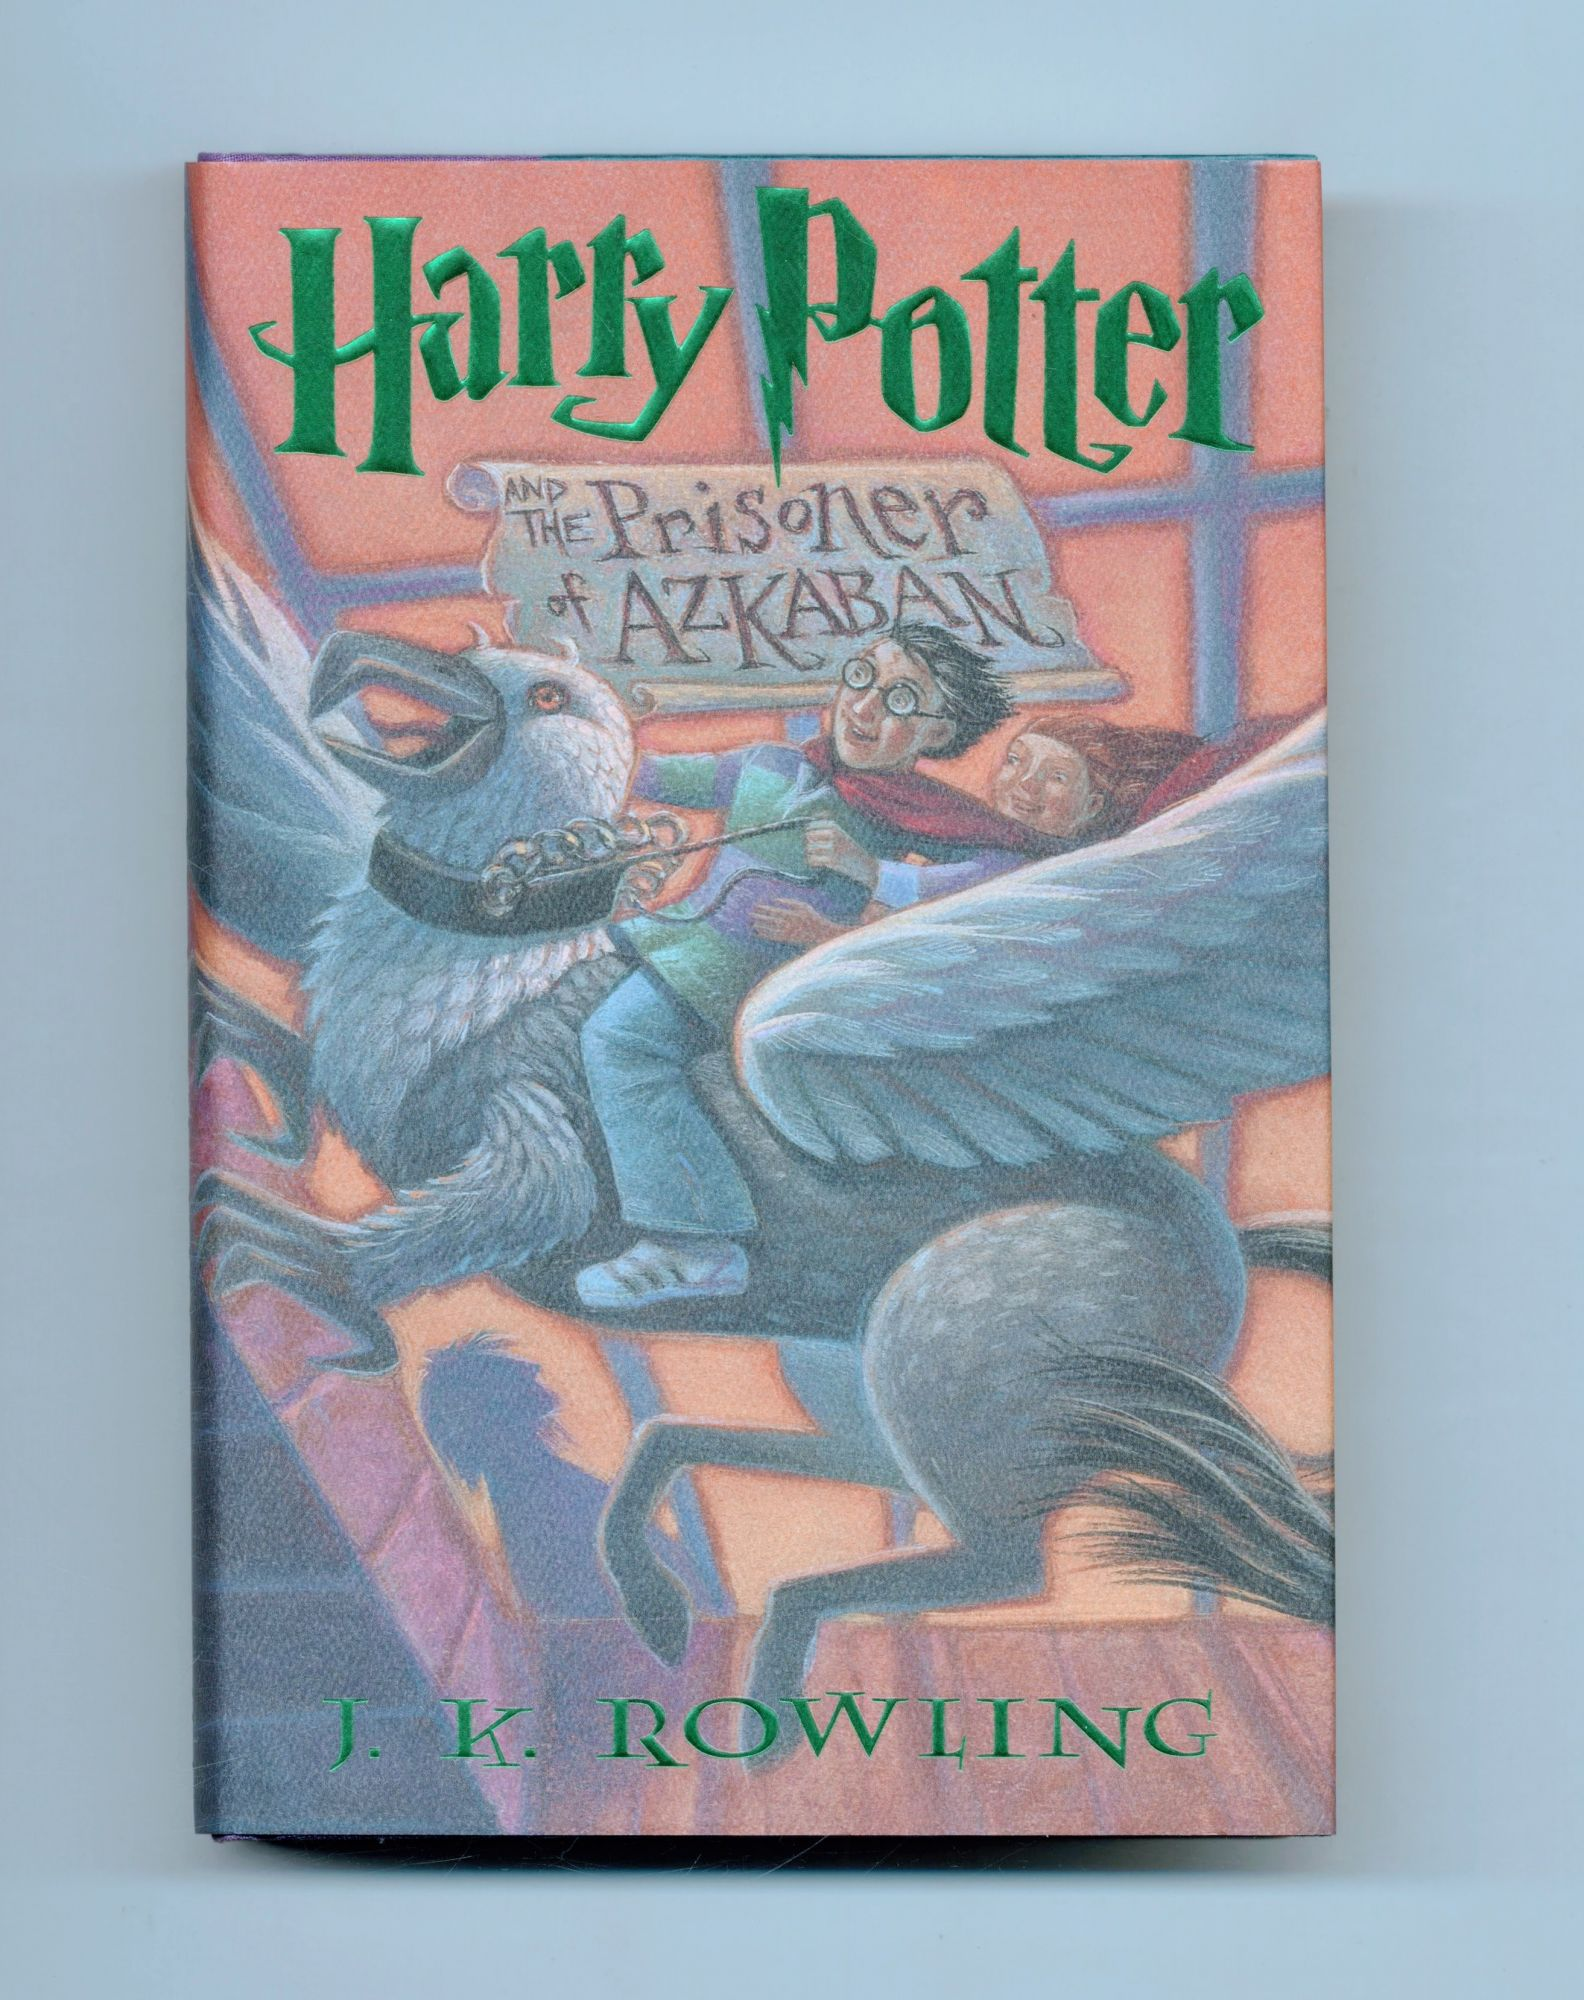 Harry Potter Book First Edition : Harry potter and the prisoner of azkaban st us edition